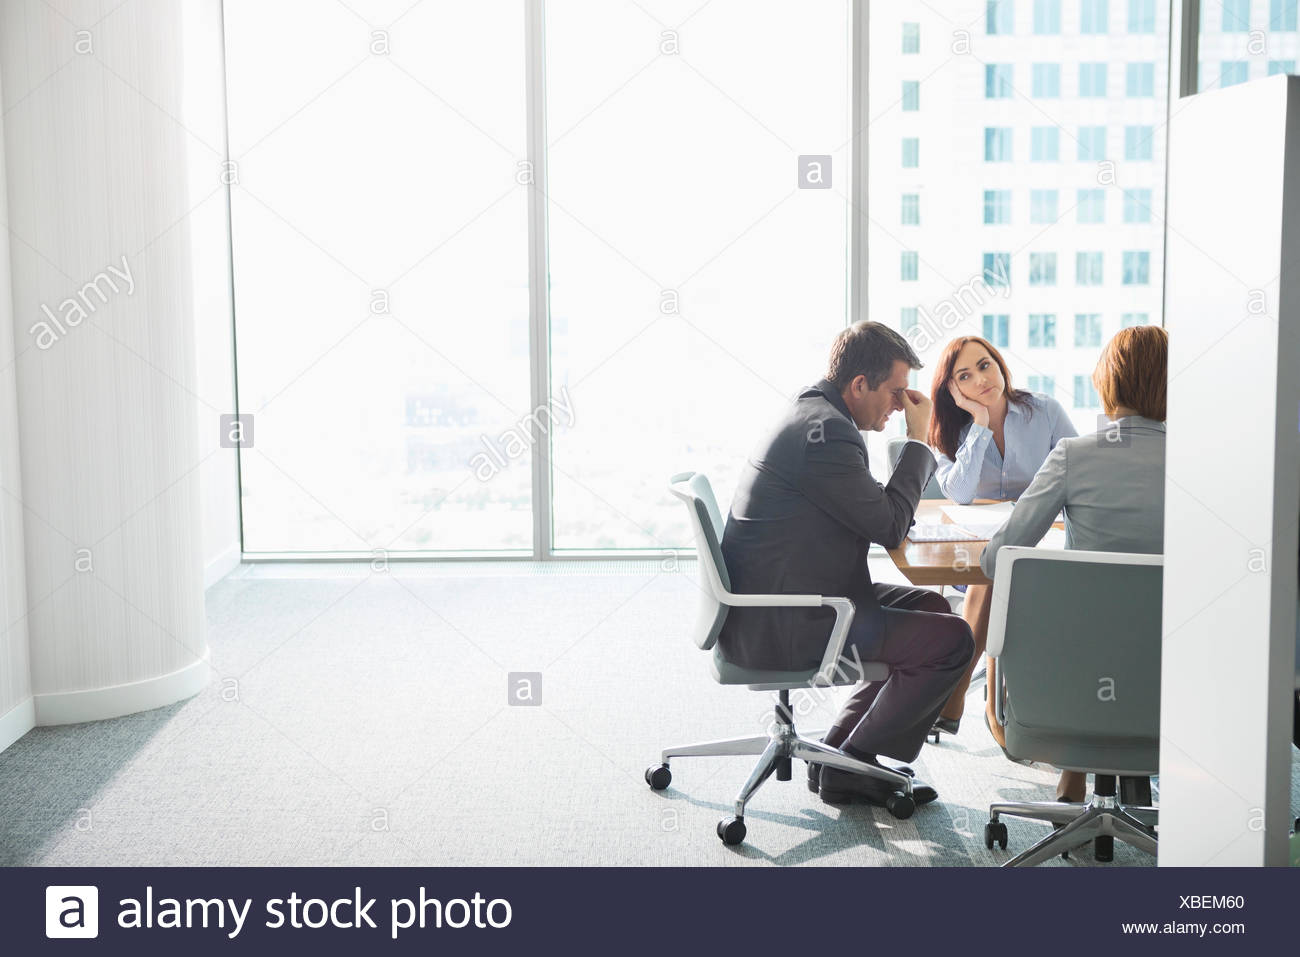 Exhausted businesspeople in meeting - Stock Image